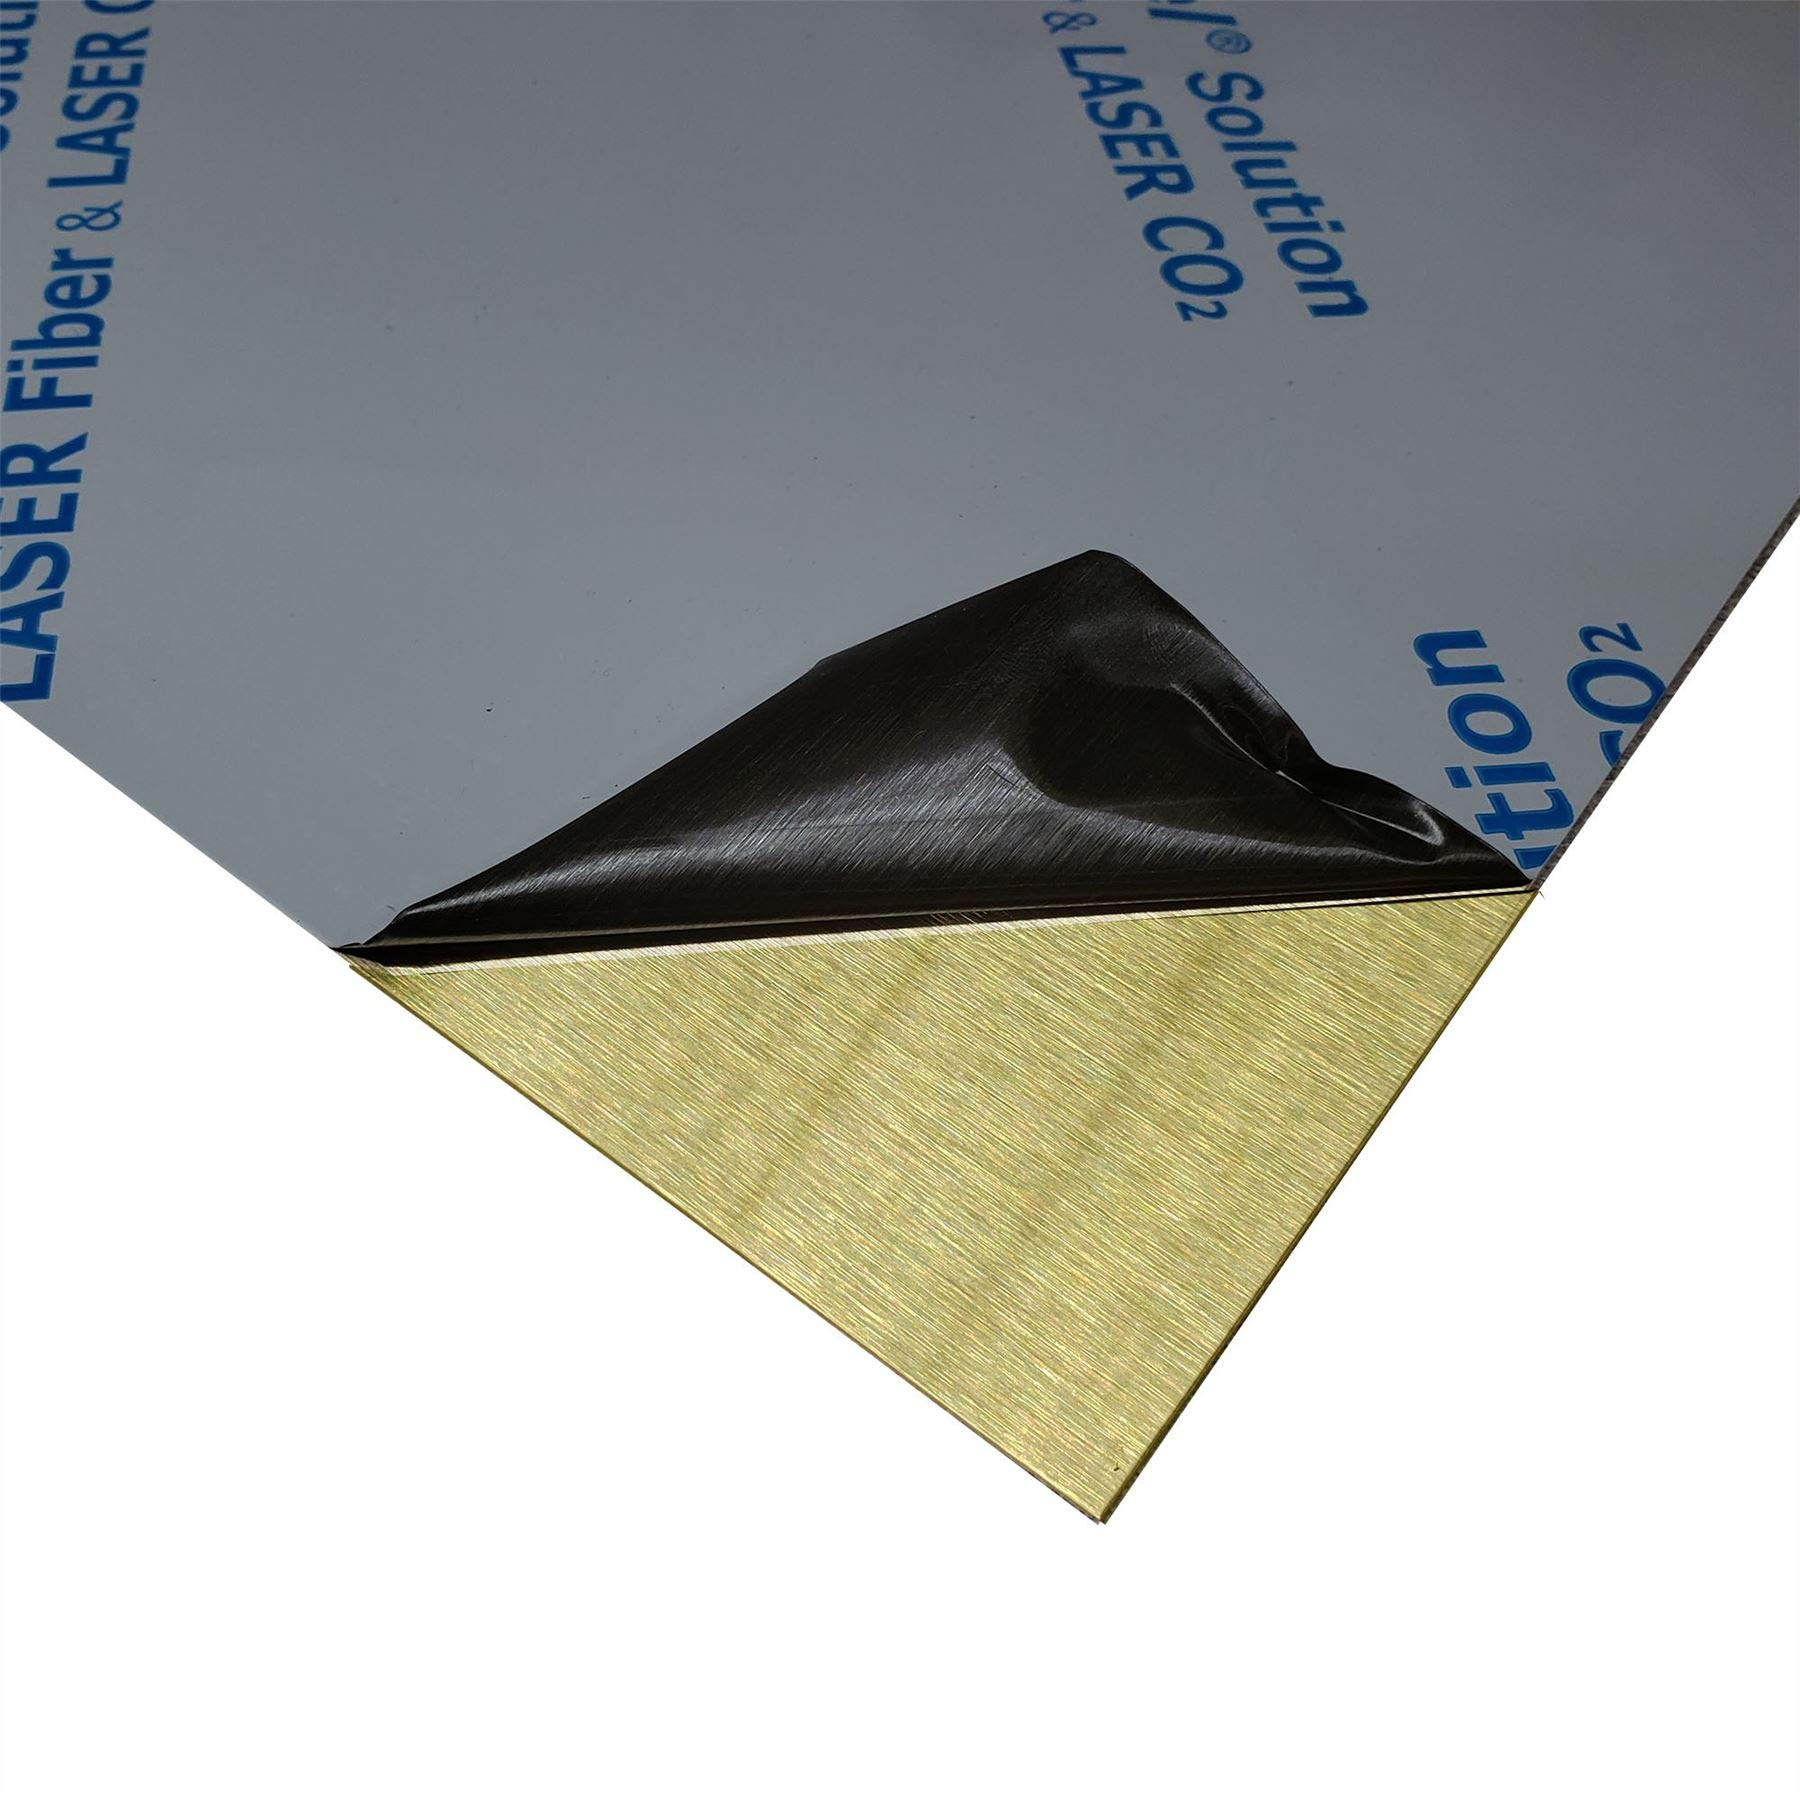 Online Metal Supply C260 Brass Sheet .050'' x 12'' x 24'' (Brushed Finish) by Online Metal Supply